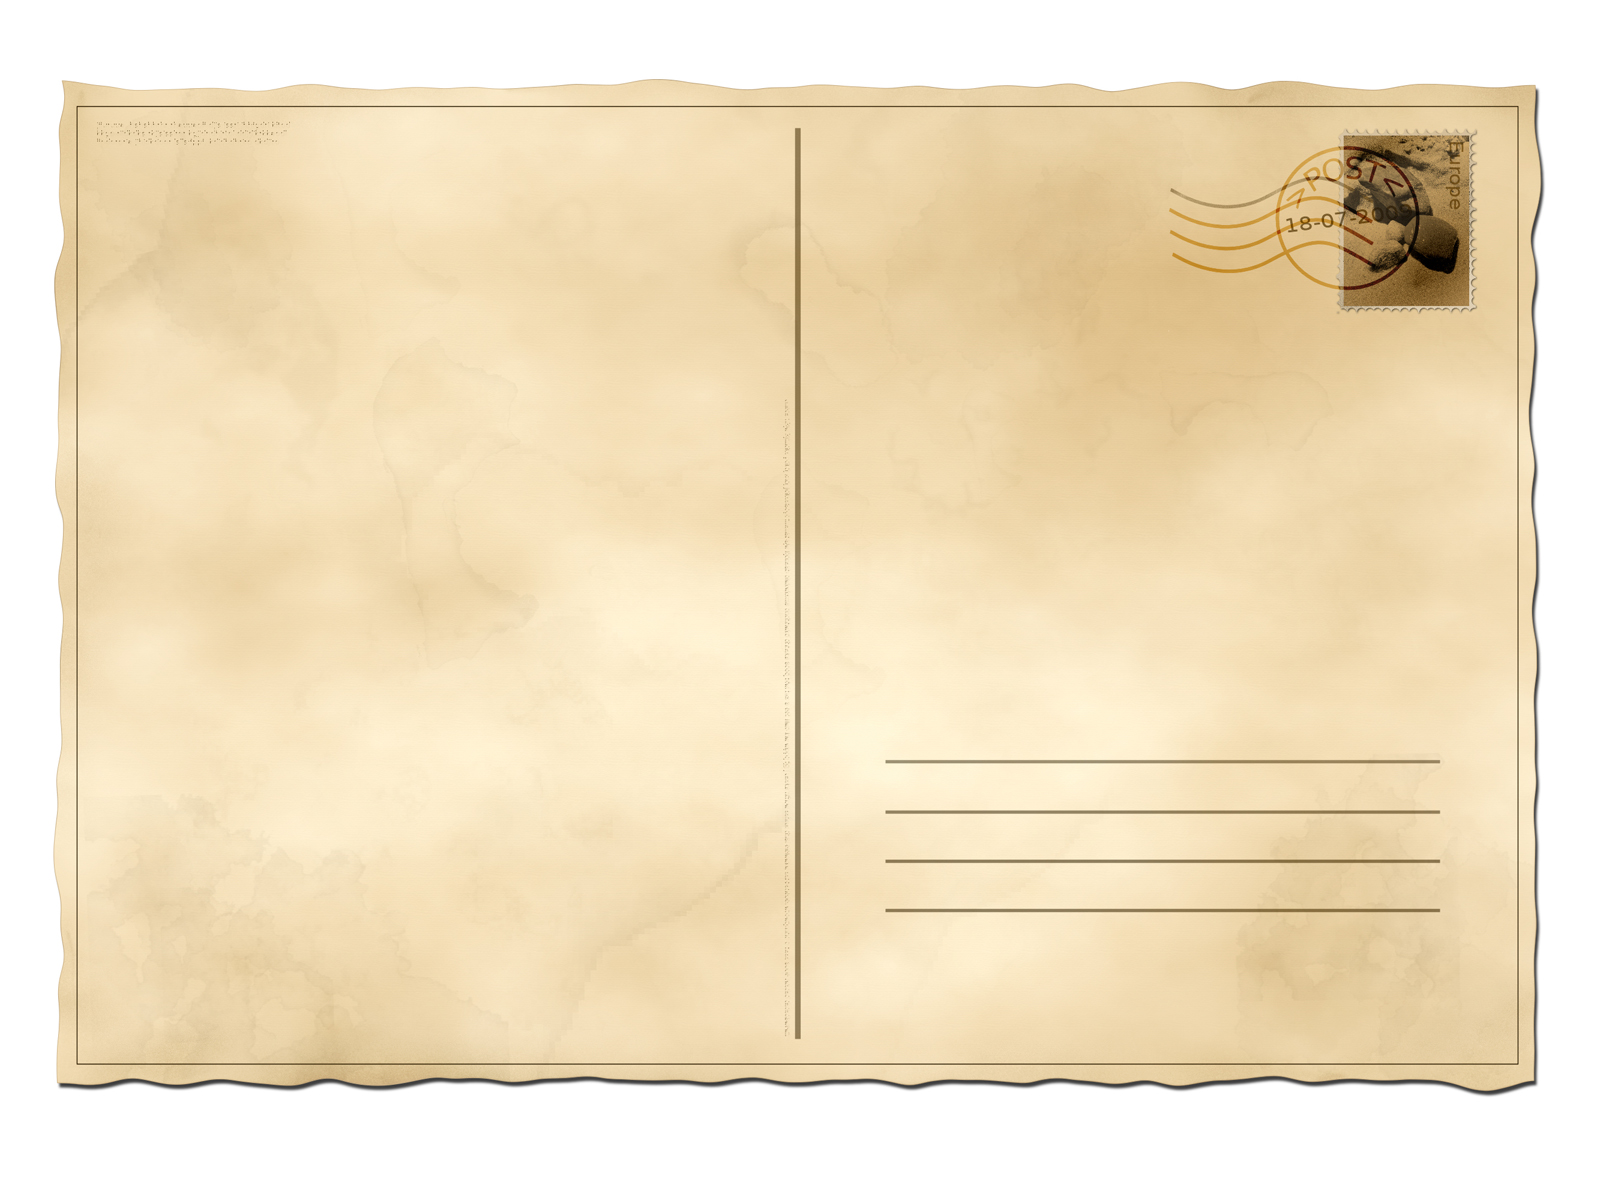 post card ppt backgrounds 1024x768 resolutions, post card ppt, Presentation templates